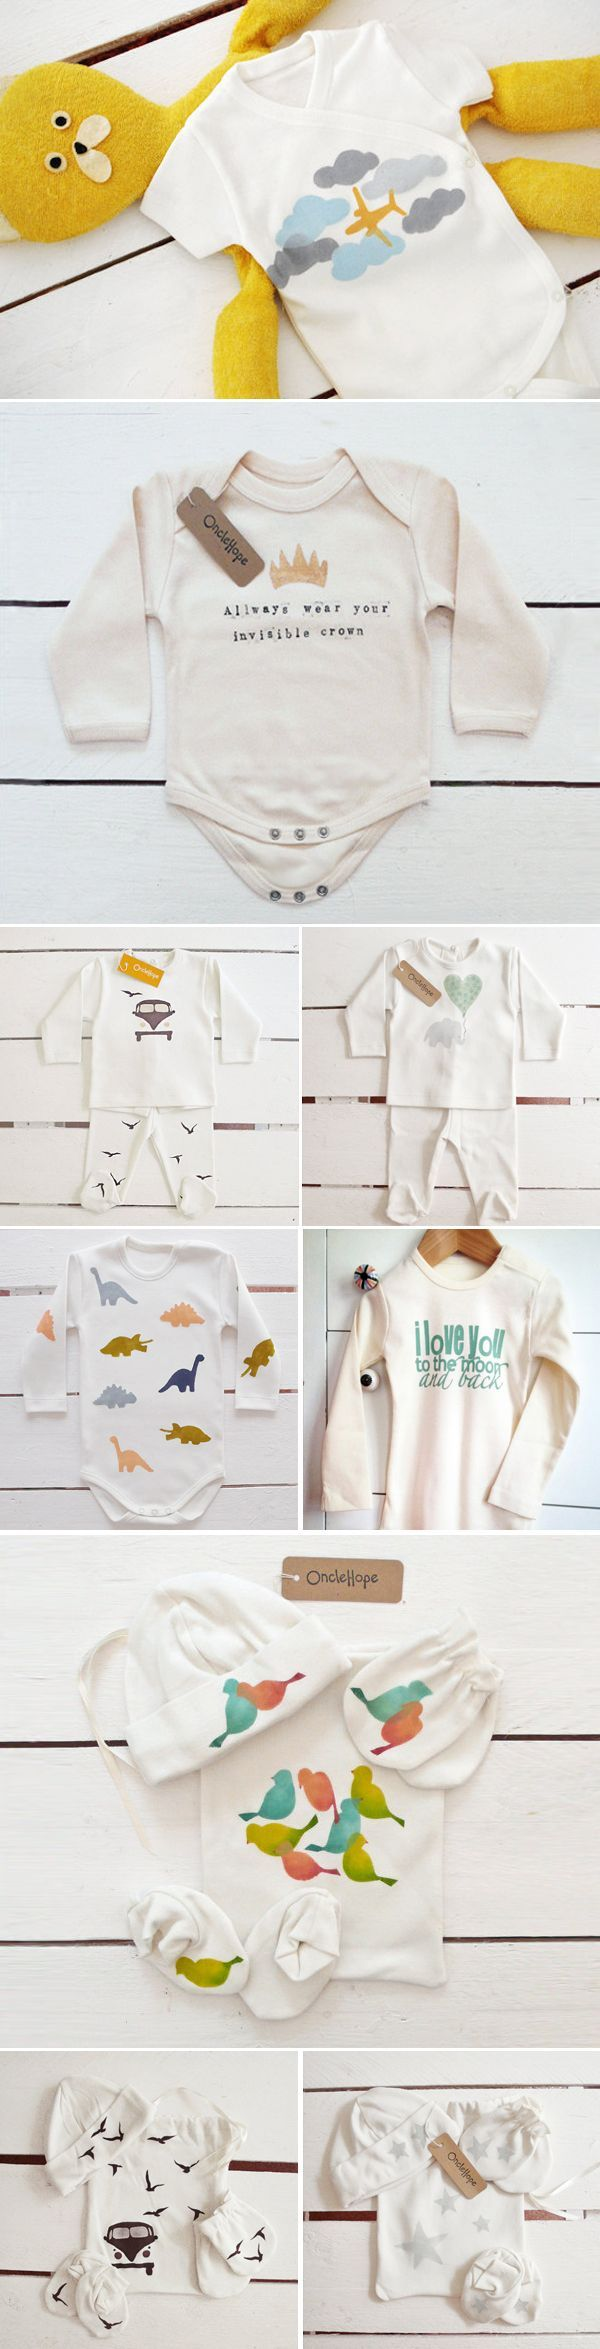 Stylish Unisex Baby Clothing